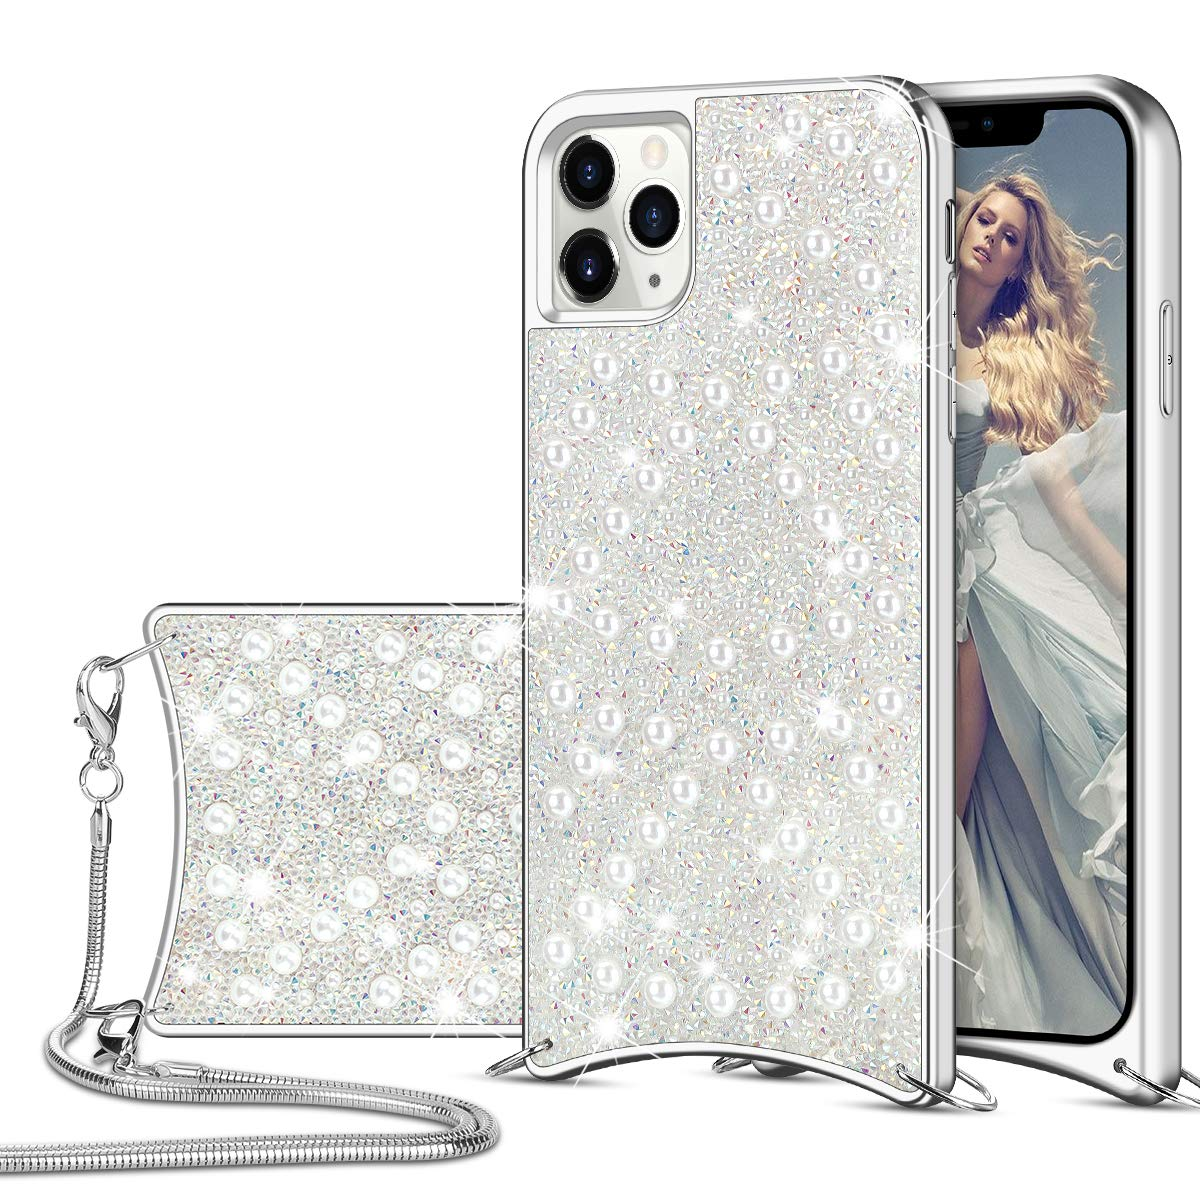 HoneyAKE for iPhone 11 Pro Max Case Glitter Bling Diamond Rhinestone Durable Hybrid TPU Bumper Hard Anti-Slip Back Cover with Crossbody Chain Protective Cover for iPhone 11 Pro Max White